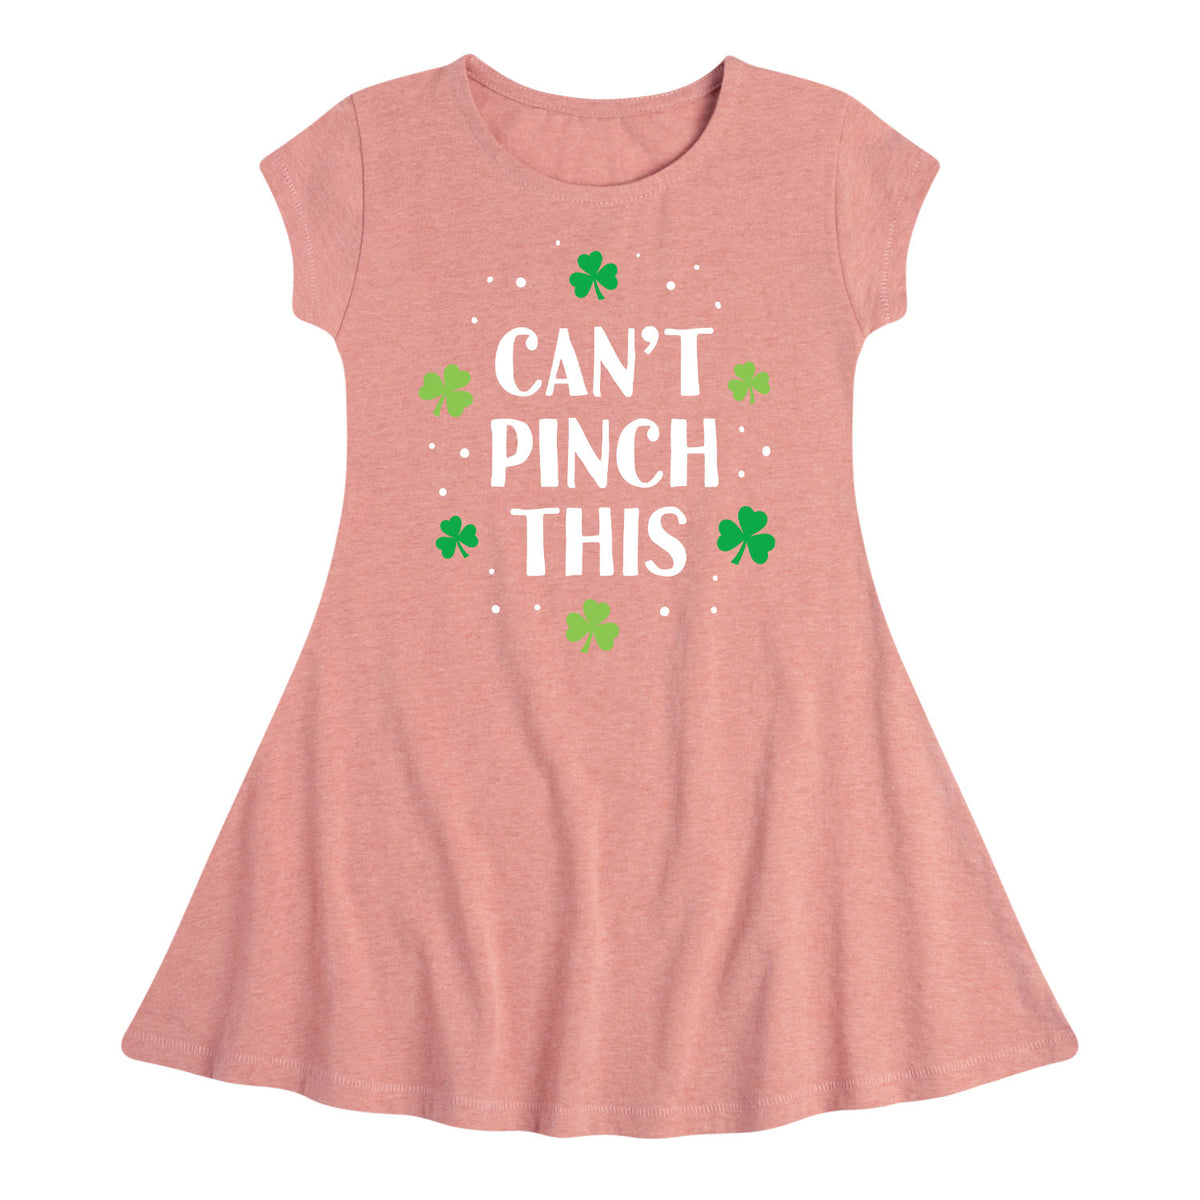 Can't Pinch This - Youth & Toddler Girls Fit and Flare Dress